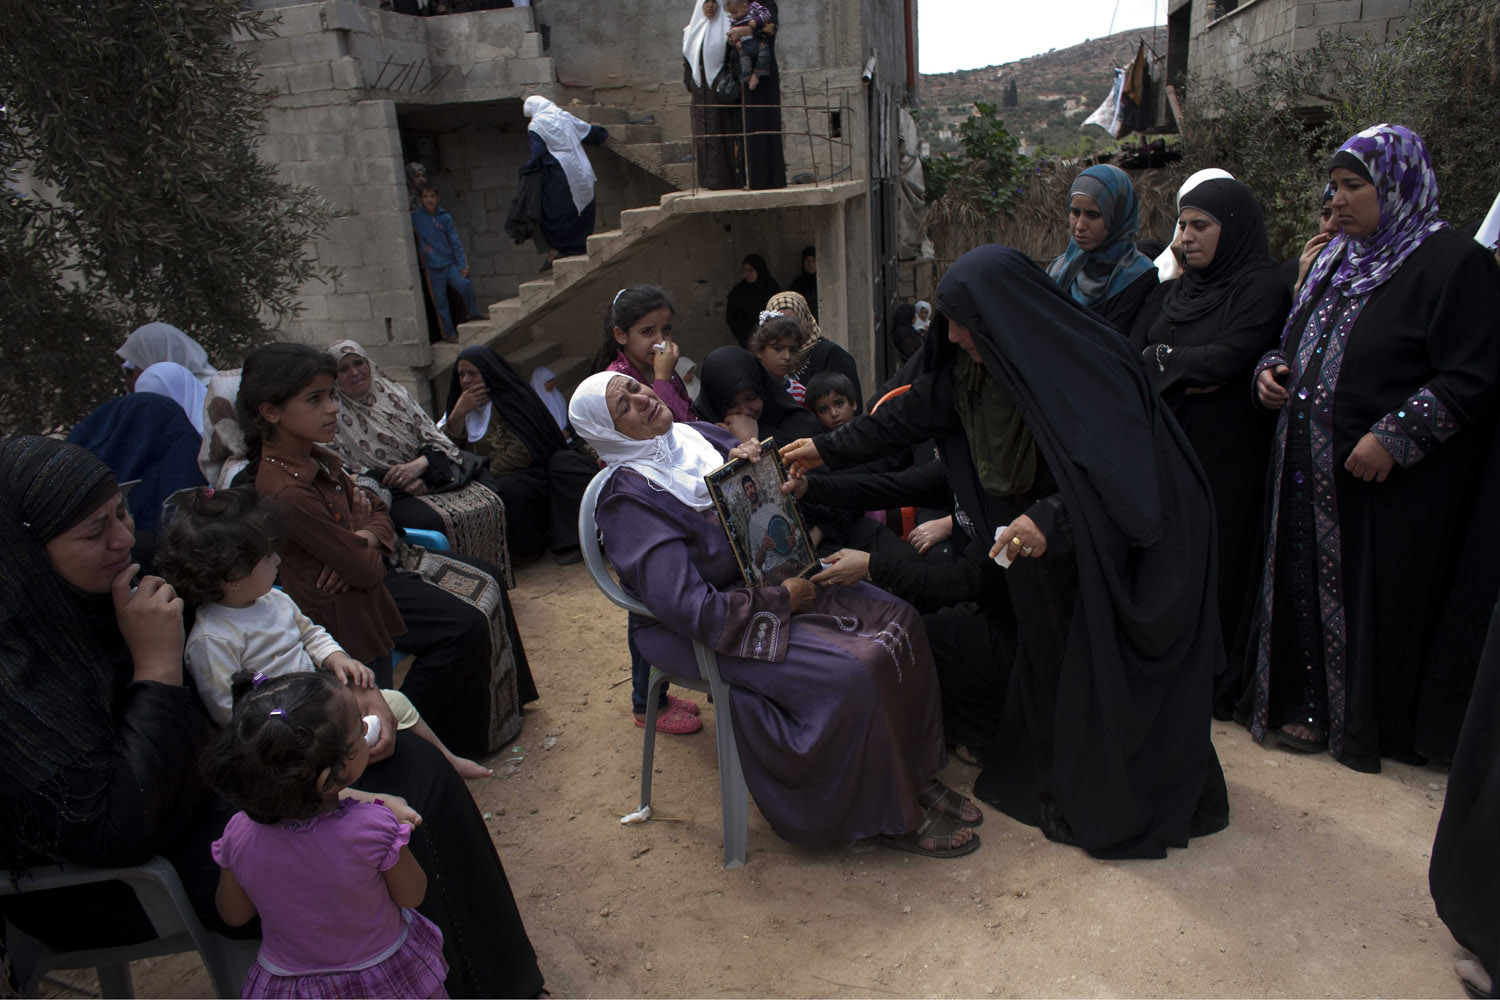 September 24, 2011. Palestinian woman Lafata Achemed Bedran, the mother of Issam Bedran, is comforted by a relative as family members and friends mourn at the funeral of her son in the West Bank village of Qusra. Issam was shot dead during clashes with Israeli soldiers just before Mahmoud Abbas was about to give his speech at the United Nations where he submitted a letter asking for full UN membership.